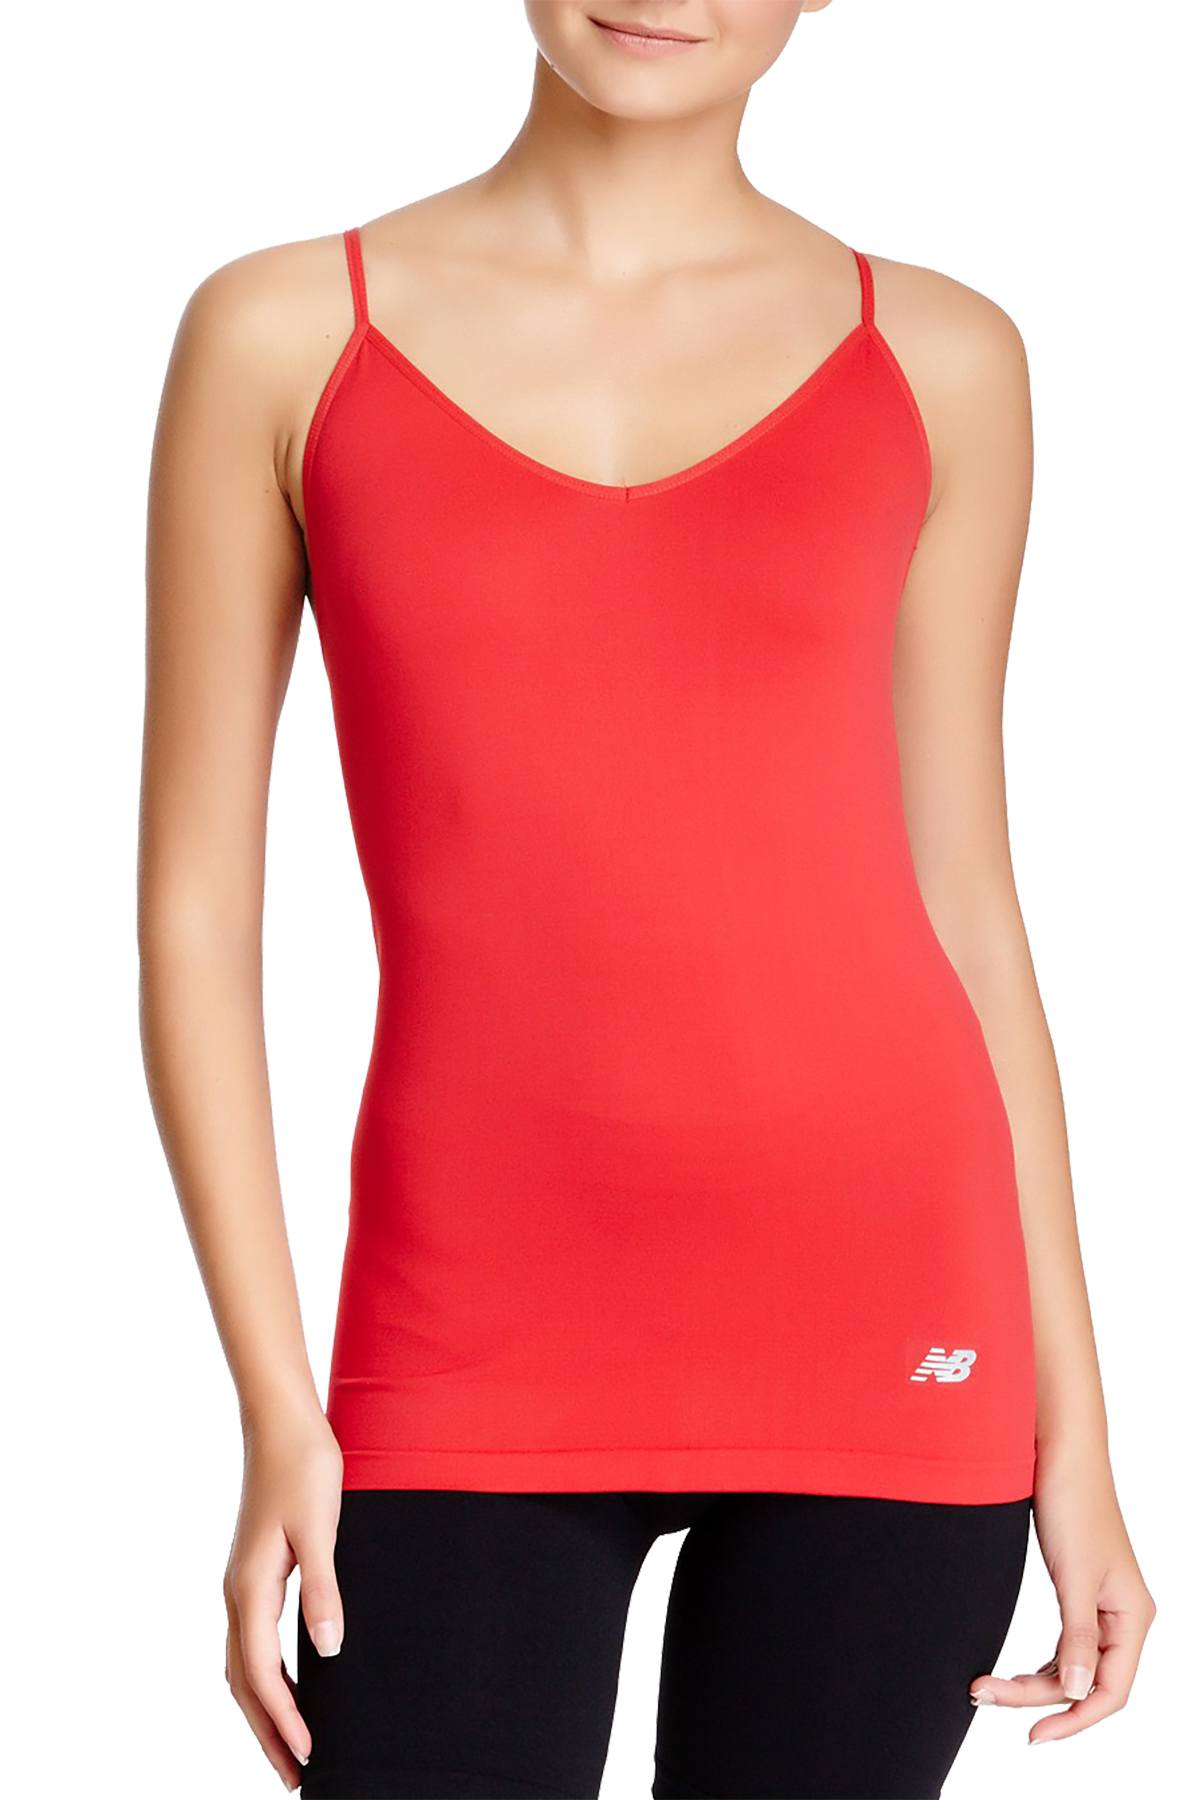 New Balance Formula-One-Red Sport Camisole